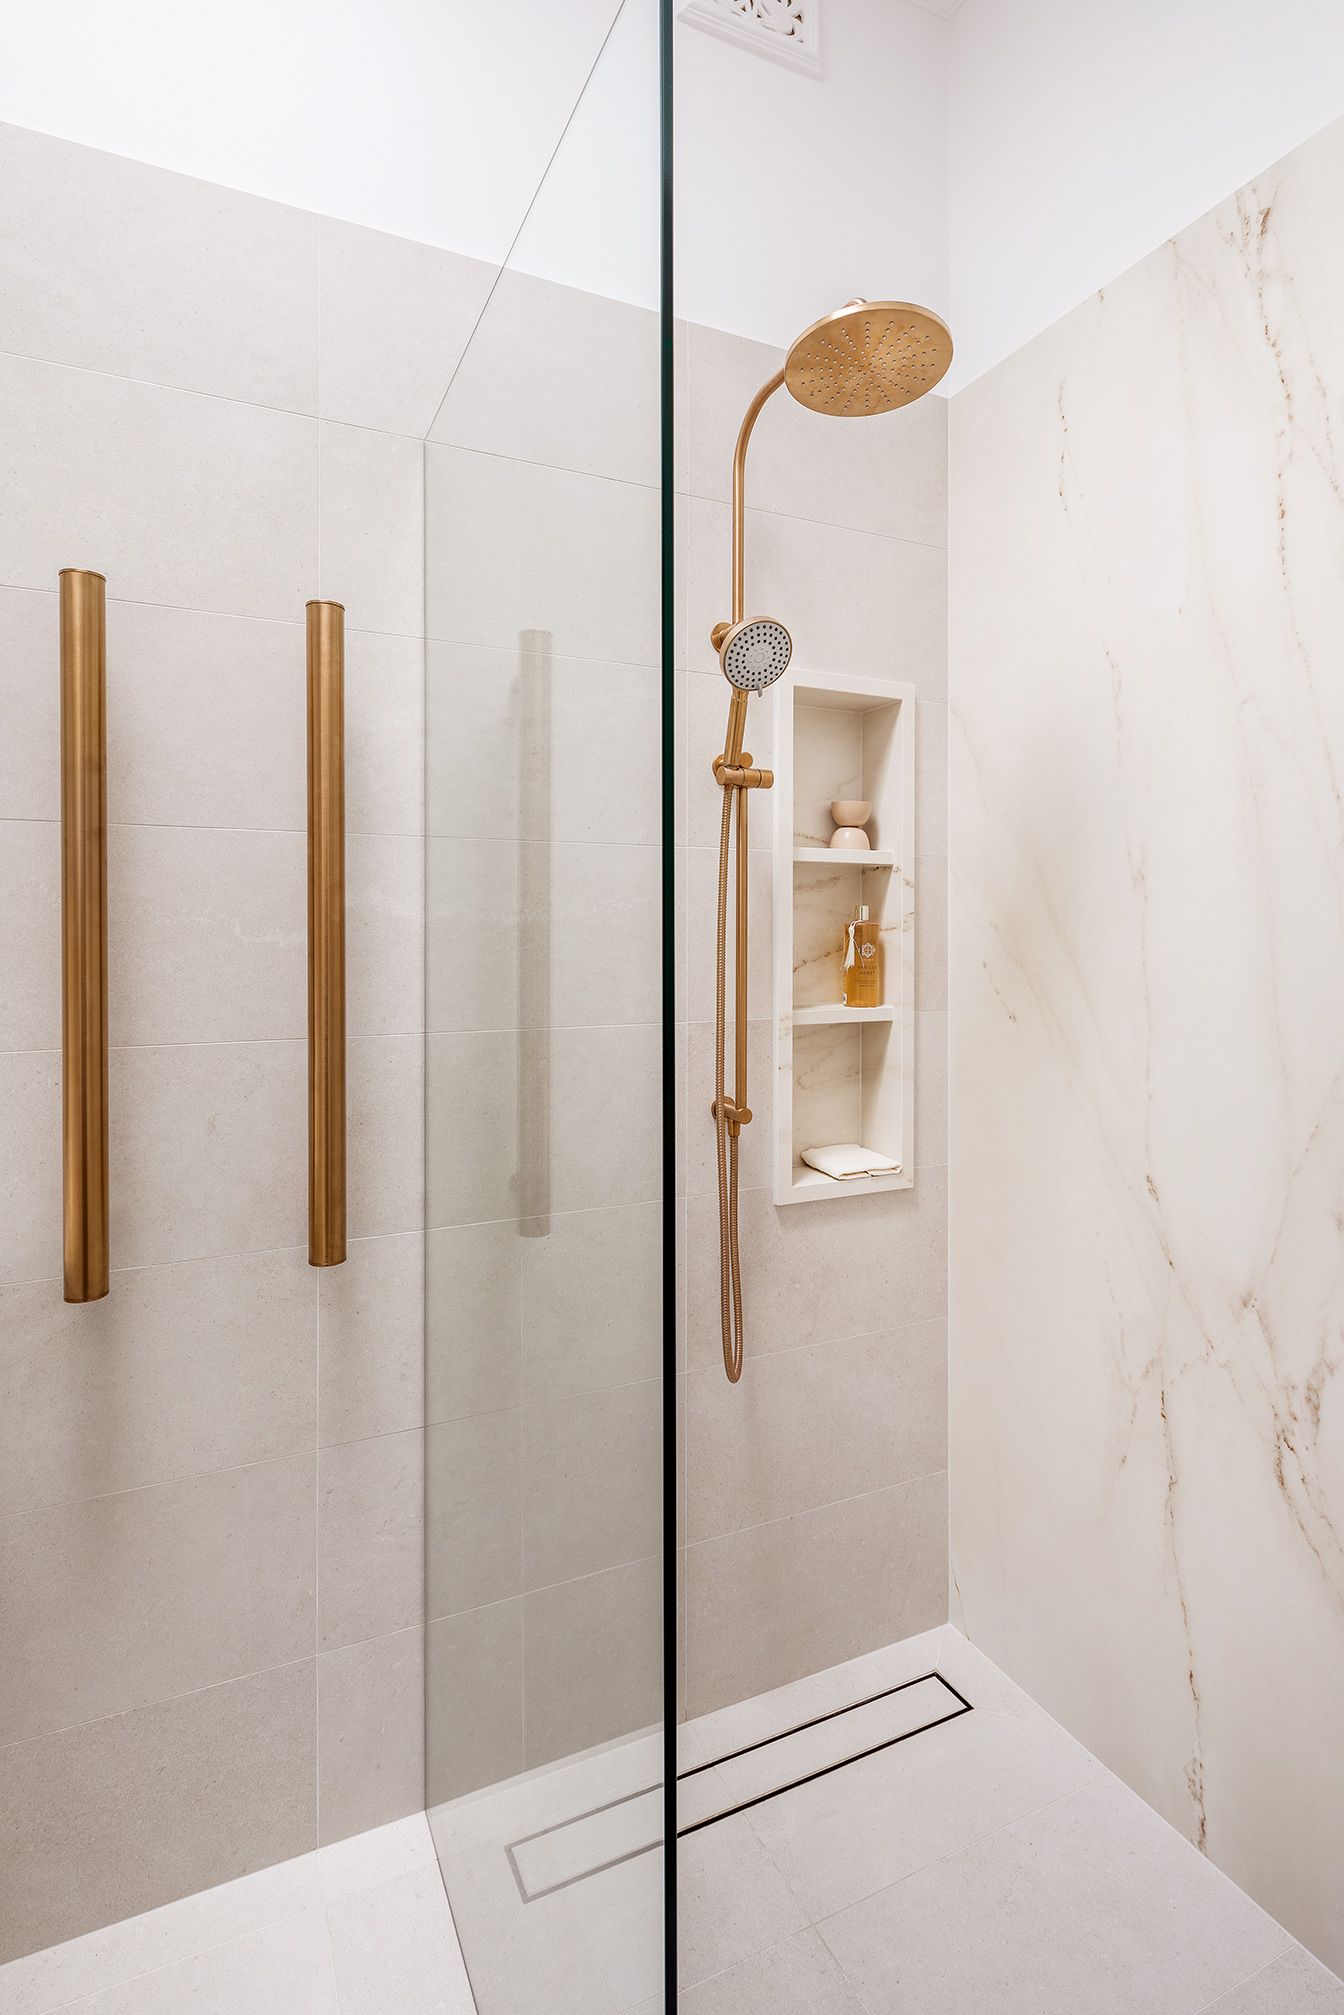 Mount Lawley Traditional Skylit Ensuite - Angled towards heated towel rails and shower